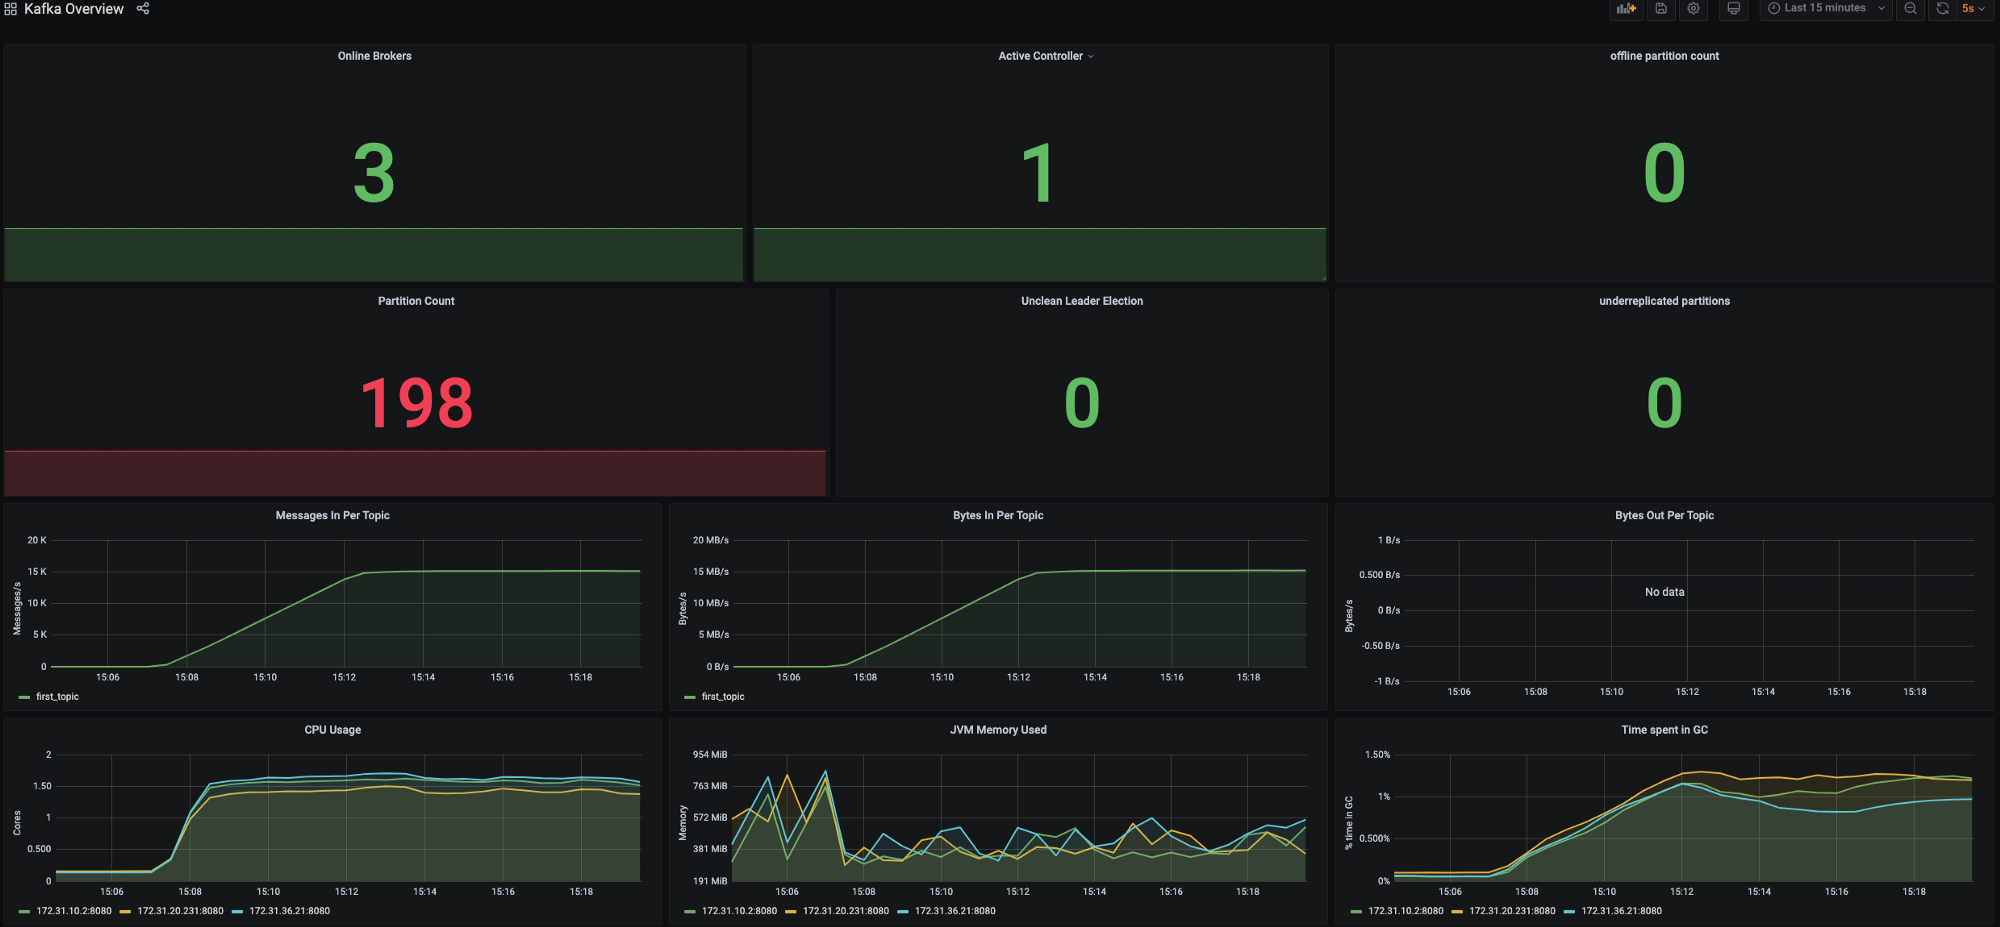 Grafana dashboard that we will setup in this blog